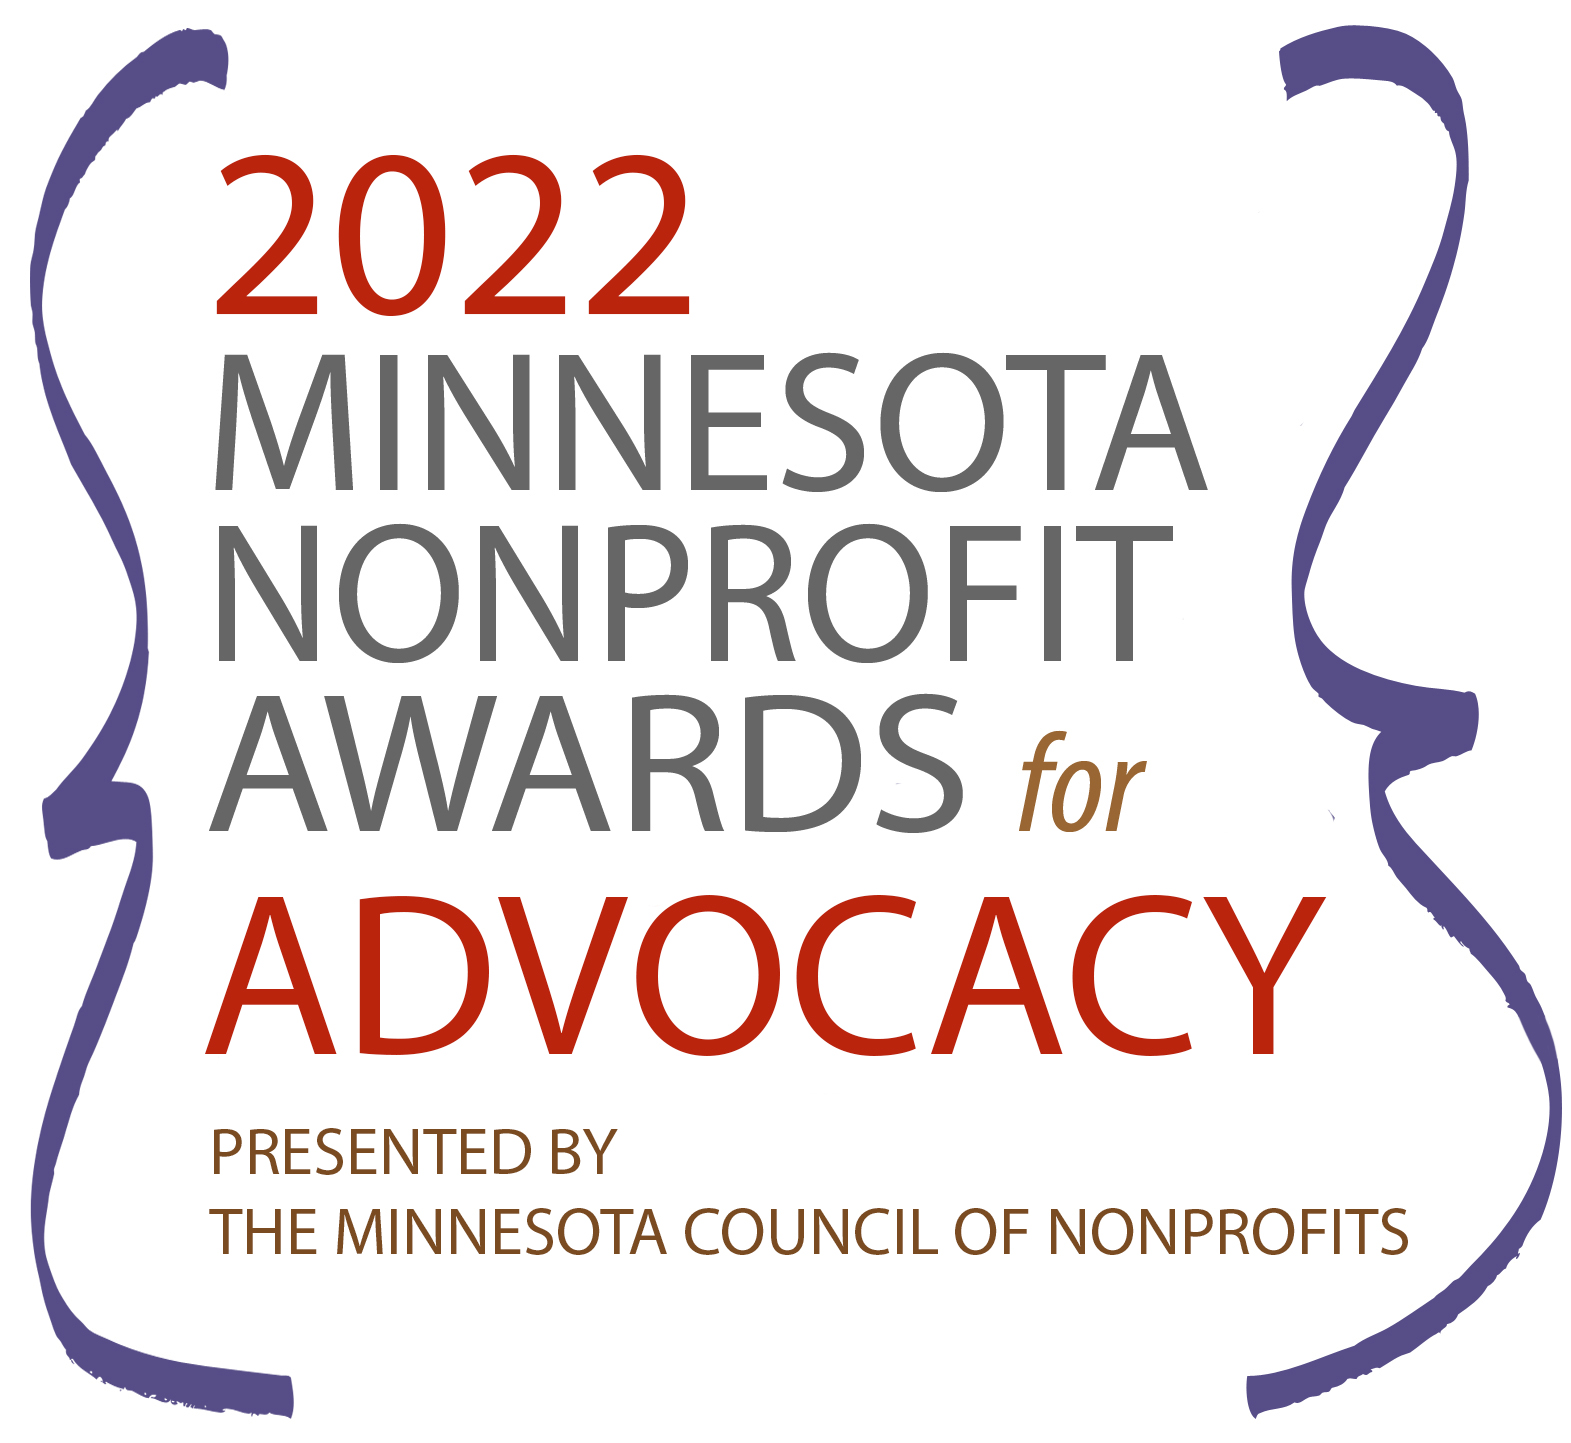 Nonprofit Mission Awards